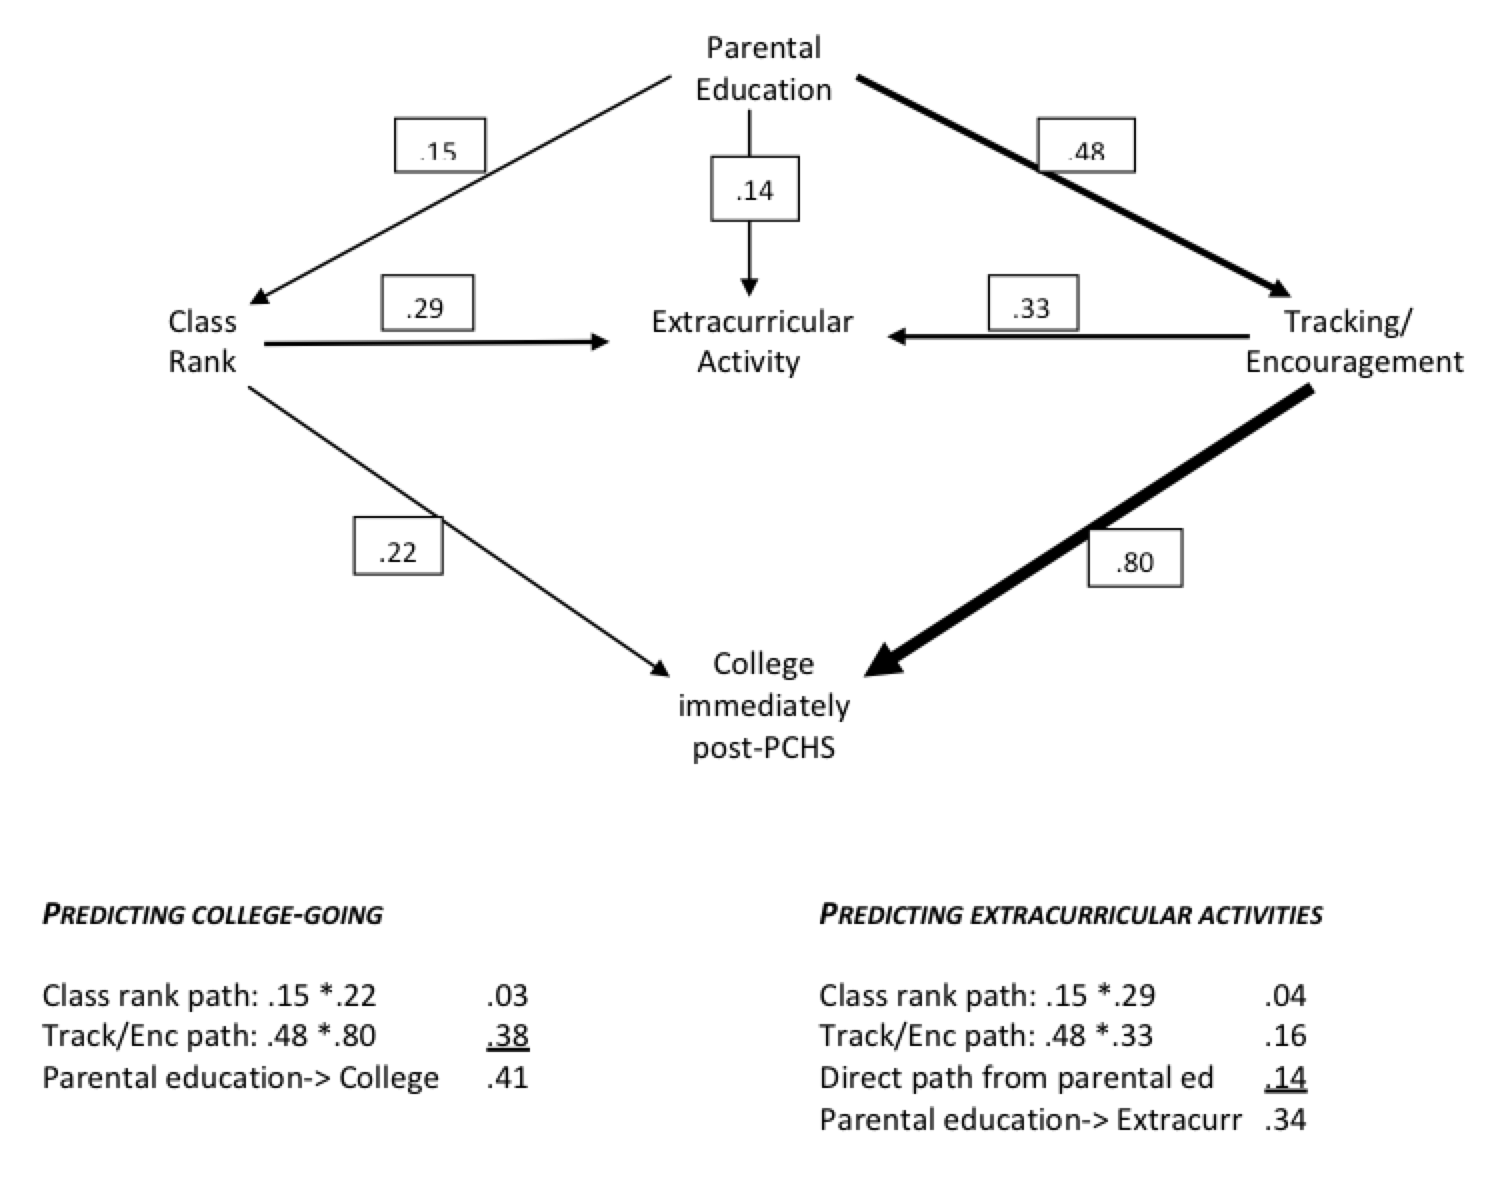 Research robert d putnam closely correlated with parental encouragement or high school tracking than was immediate college going a comparable path diagram predicting ultimate ccuart Images